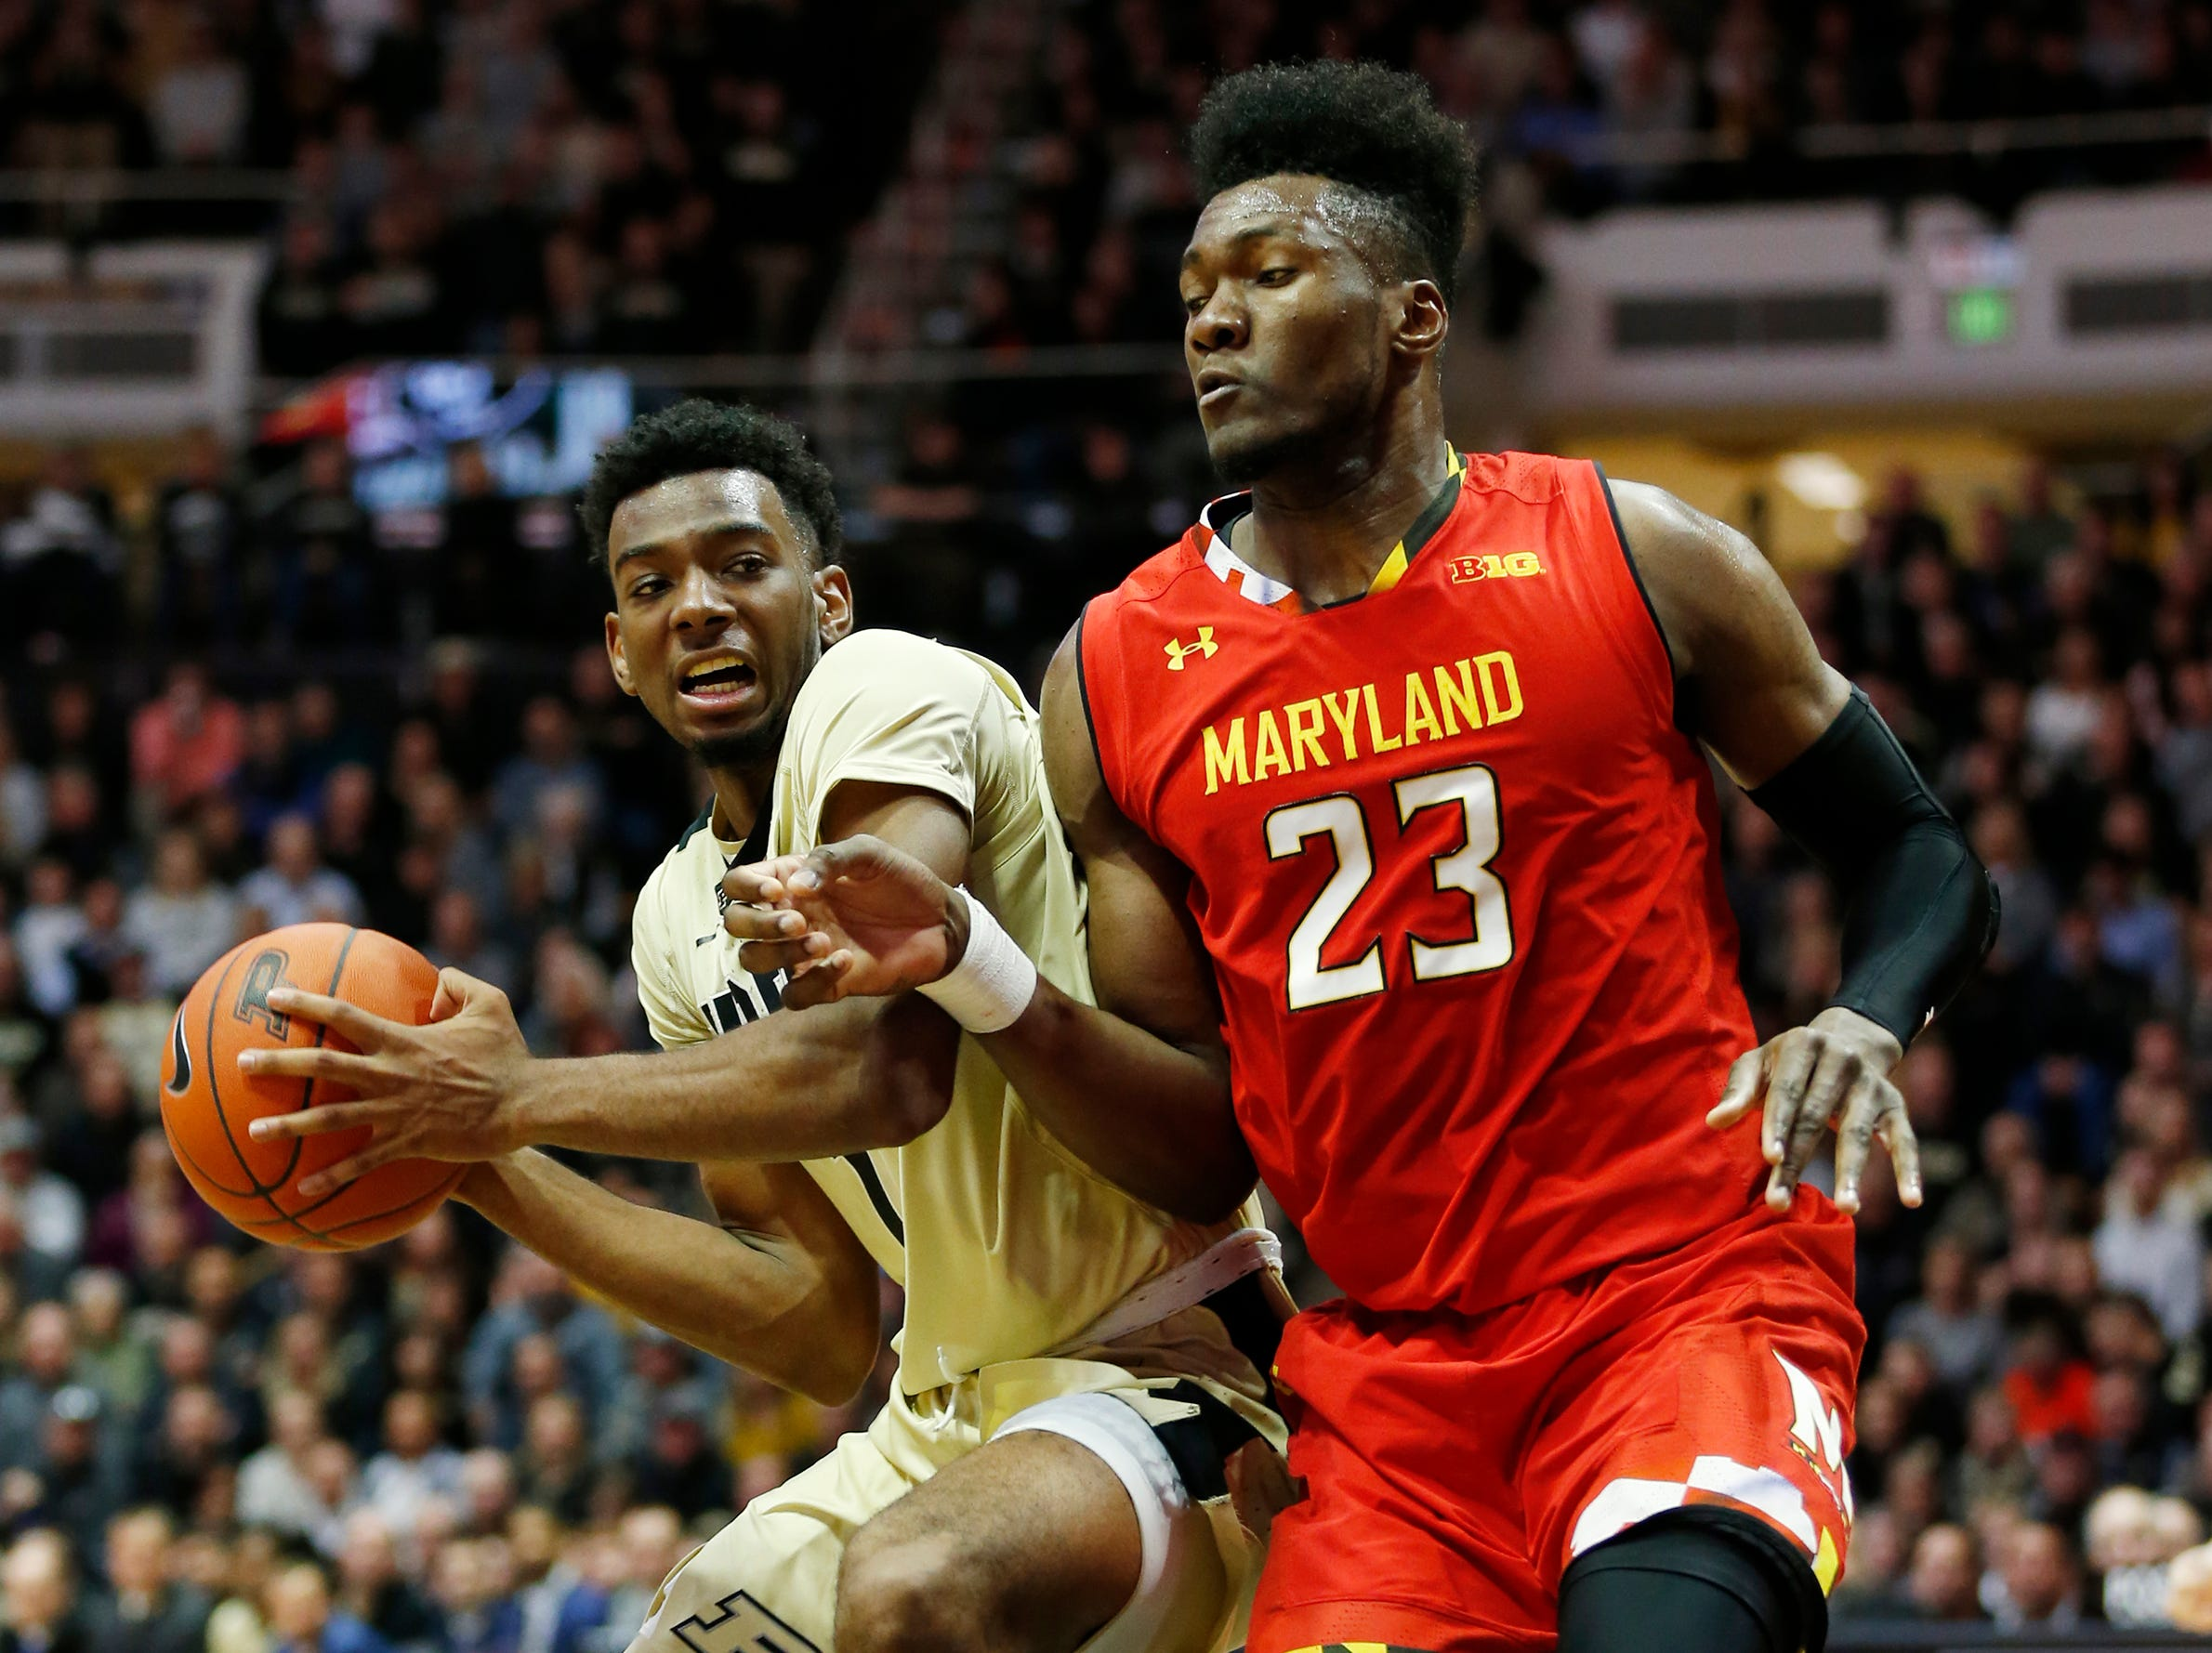 Aaron Wheeler of Purdue works for a shot against Bruno Fernando of Maryland Thursday, December 6, 2018, at Mackey Arena. Purdue defeated Maryland 62-60.